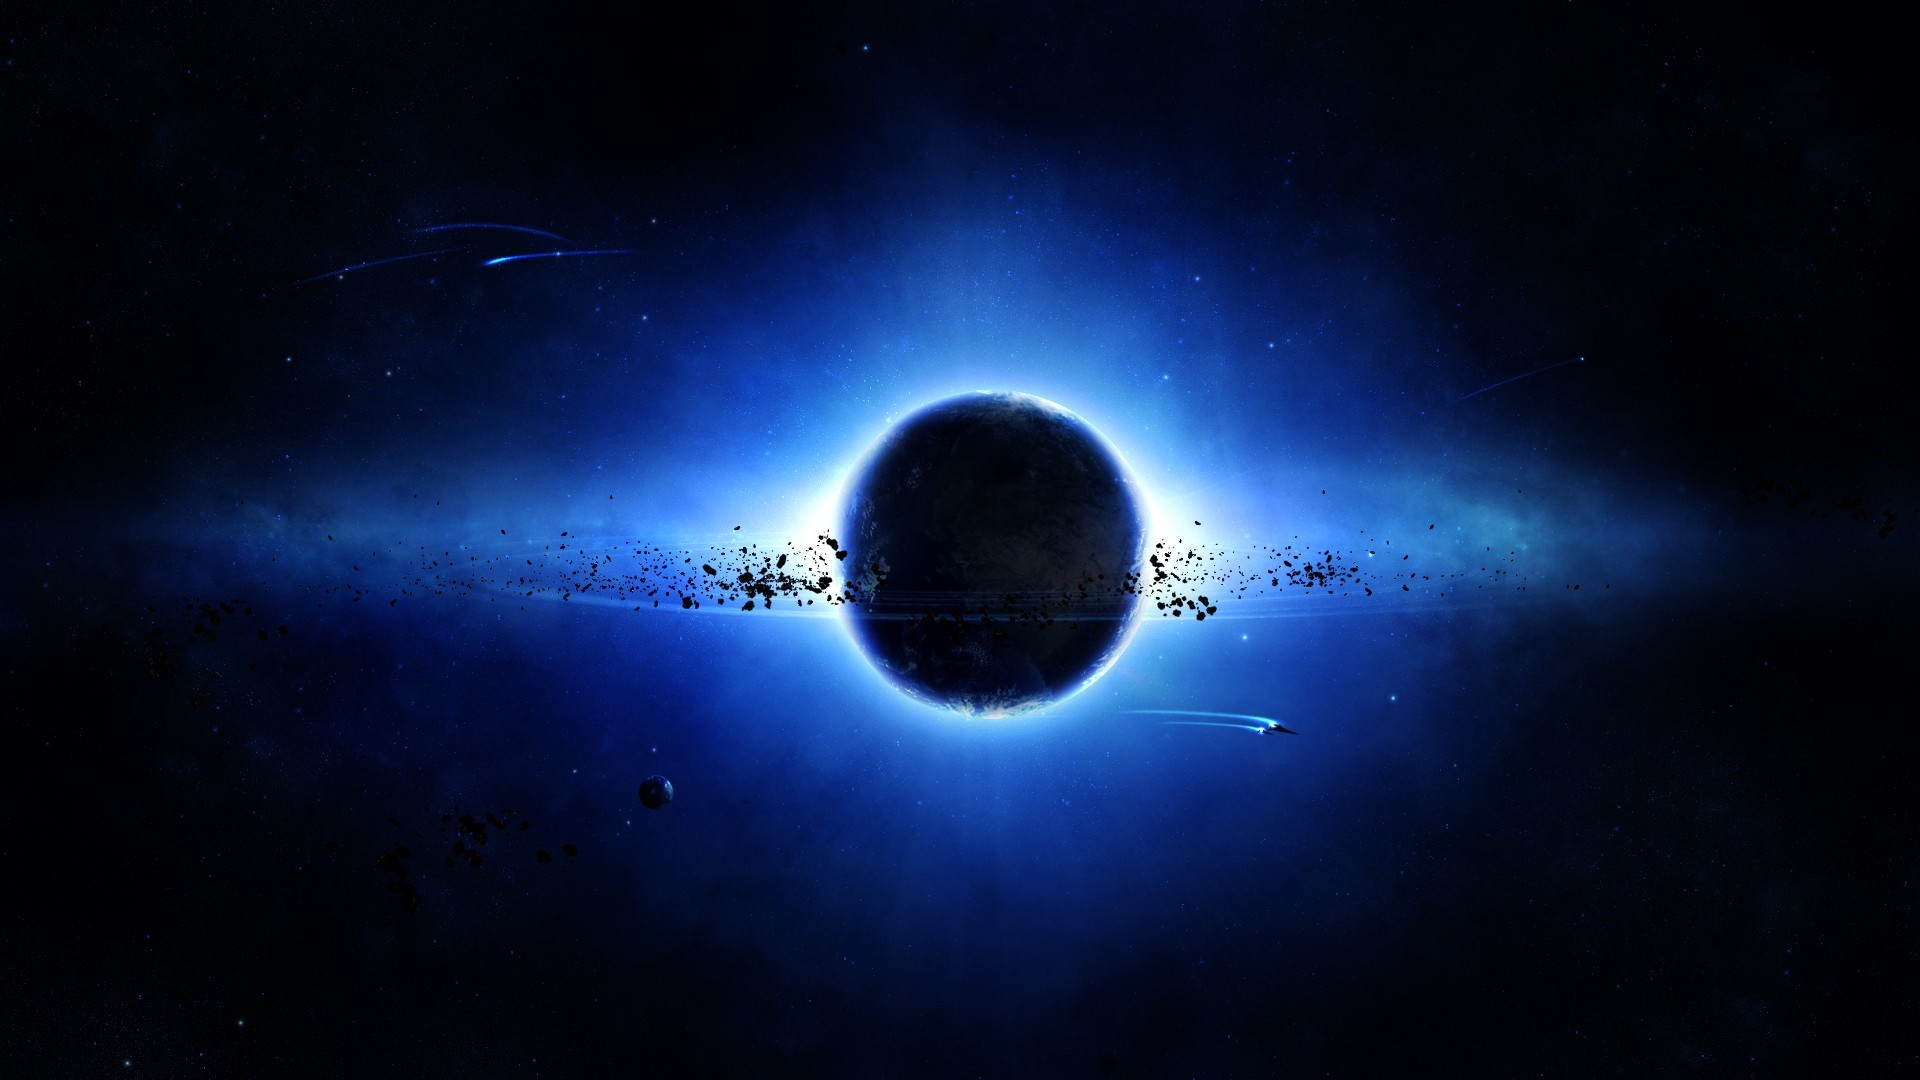 Black And Blue Space Wallpapers   The Art Mad Wallpapers